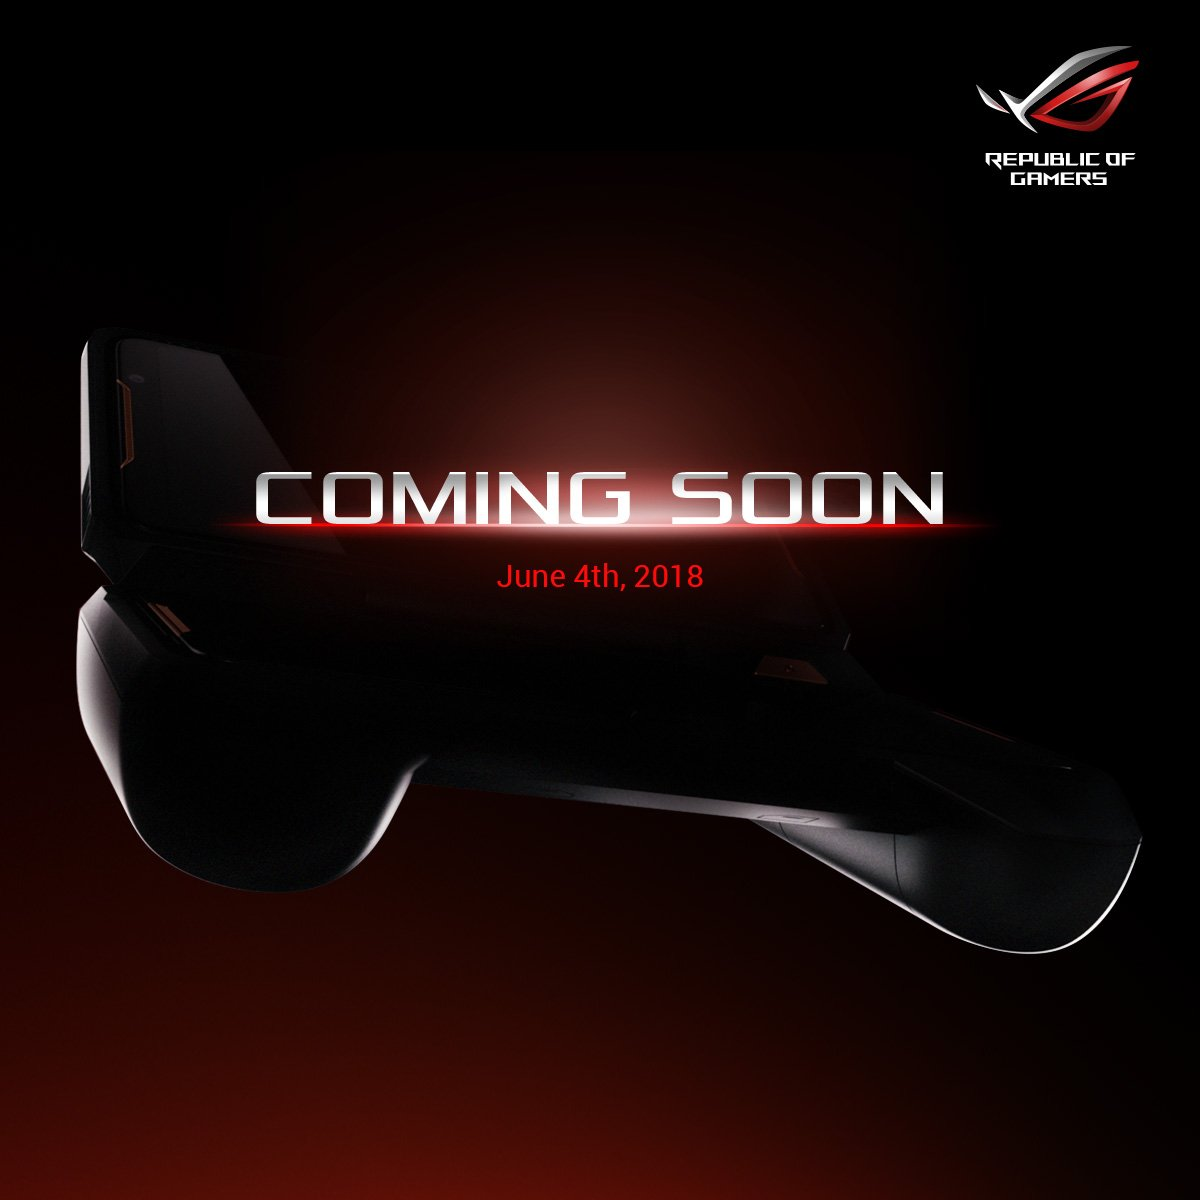 asus rog tweets image suggesting a gaming phone to compete against